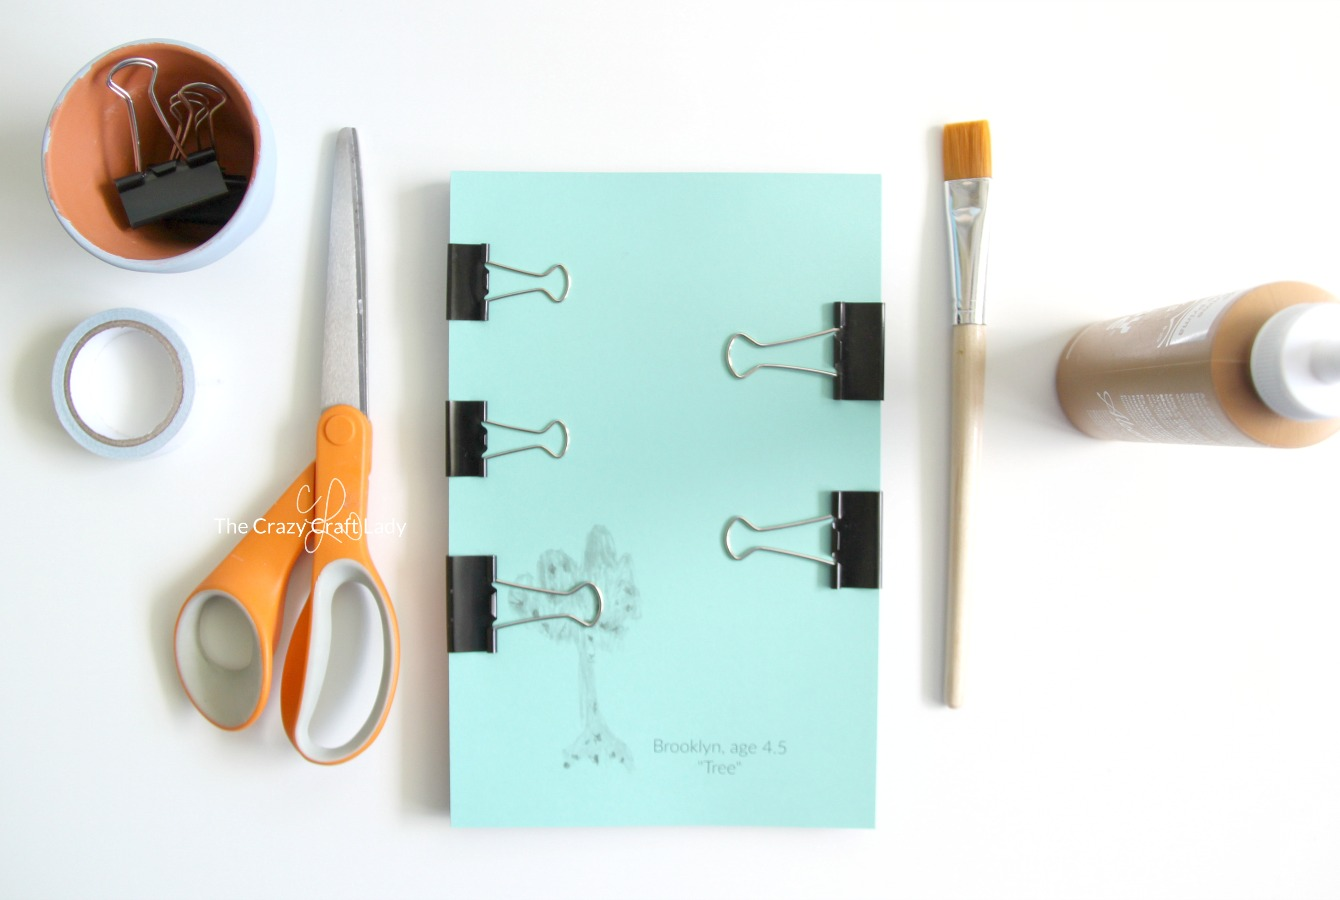 Make your own DIY notepad, customized with your child's artwork. This would make a perfect gift for a grandparent or parent! Learn how to photograph your child's artwork and use it for custom DIY projects.